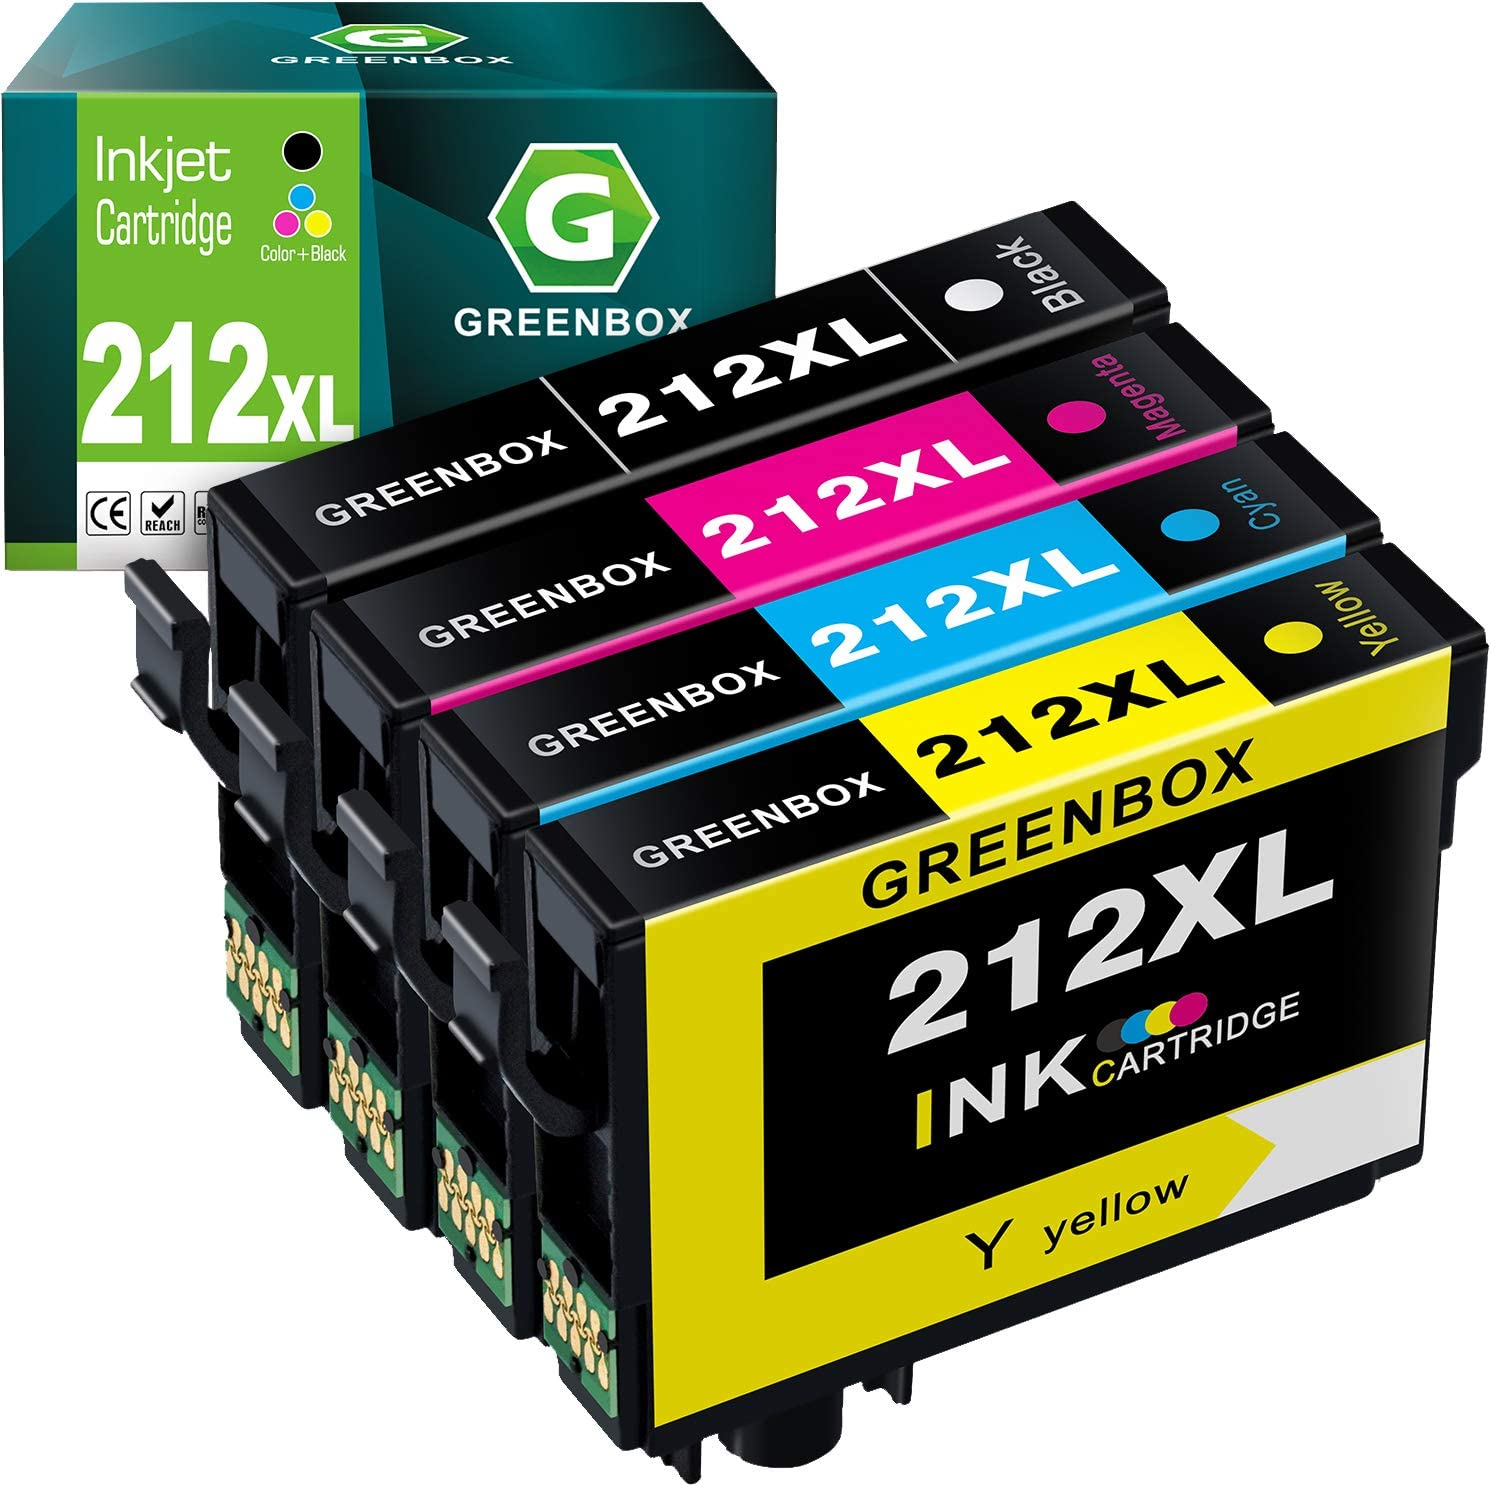 GREENBOX Remanufactured Ink Cartridge Replacement for Epson 212XL 212 XL Used in Workforce WF-2850 WF-2830 Expression Home XP-4100 XP-4105 Printer (1 Black 1 Cyan 1 Magenta 1 Yellow)